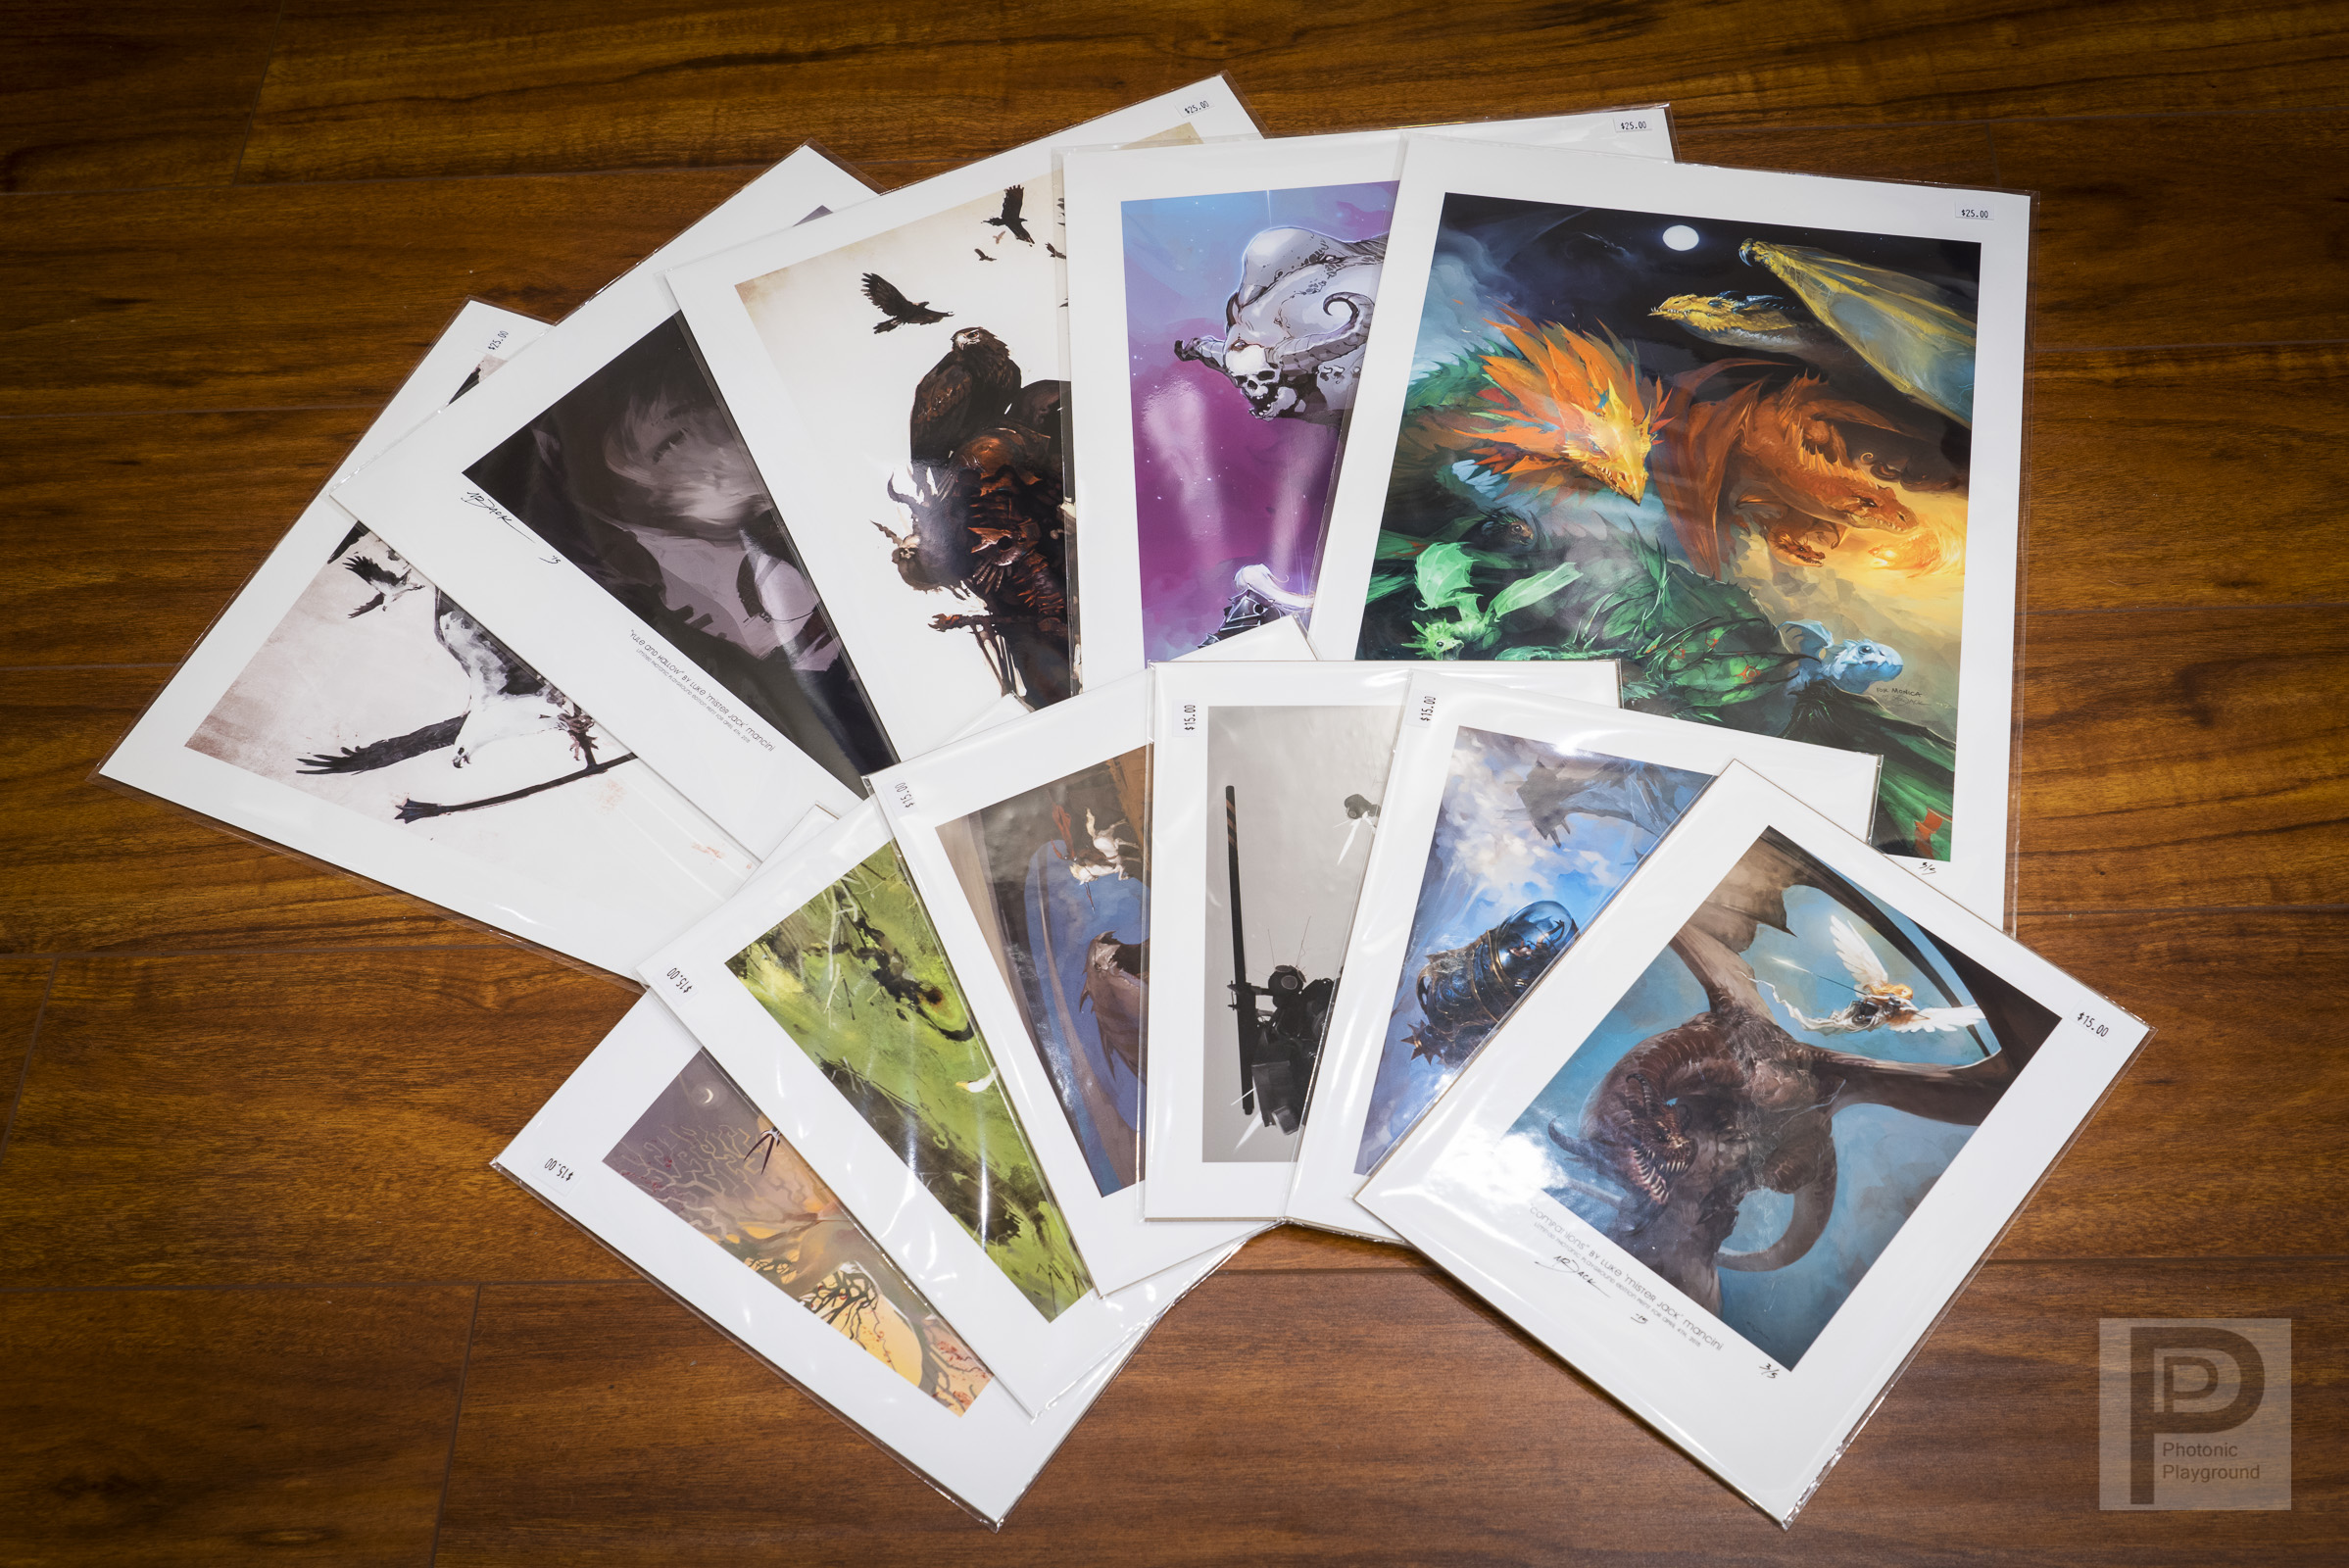 """Limited gallery exhibition giclée art prints for  Luke """"Mr. Jack"""" Mancini  during his  April/May 2015 show . These were printed on Epson Cold Press Bright in 8.5x11"""" and 13x19"""" sizes with protective plastic sleeves and hard backboards in each print.  See his online store here ."""